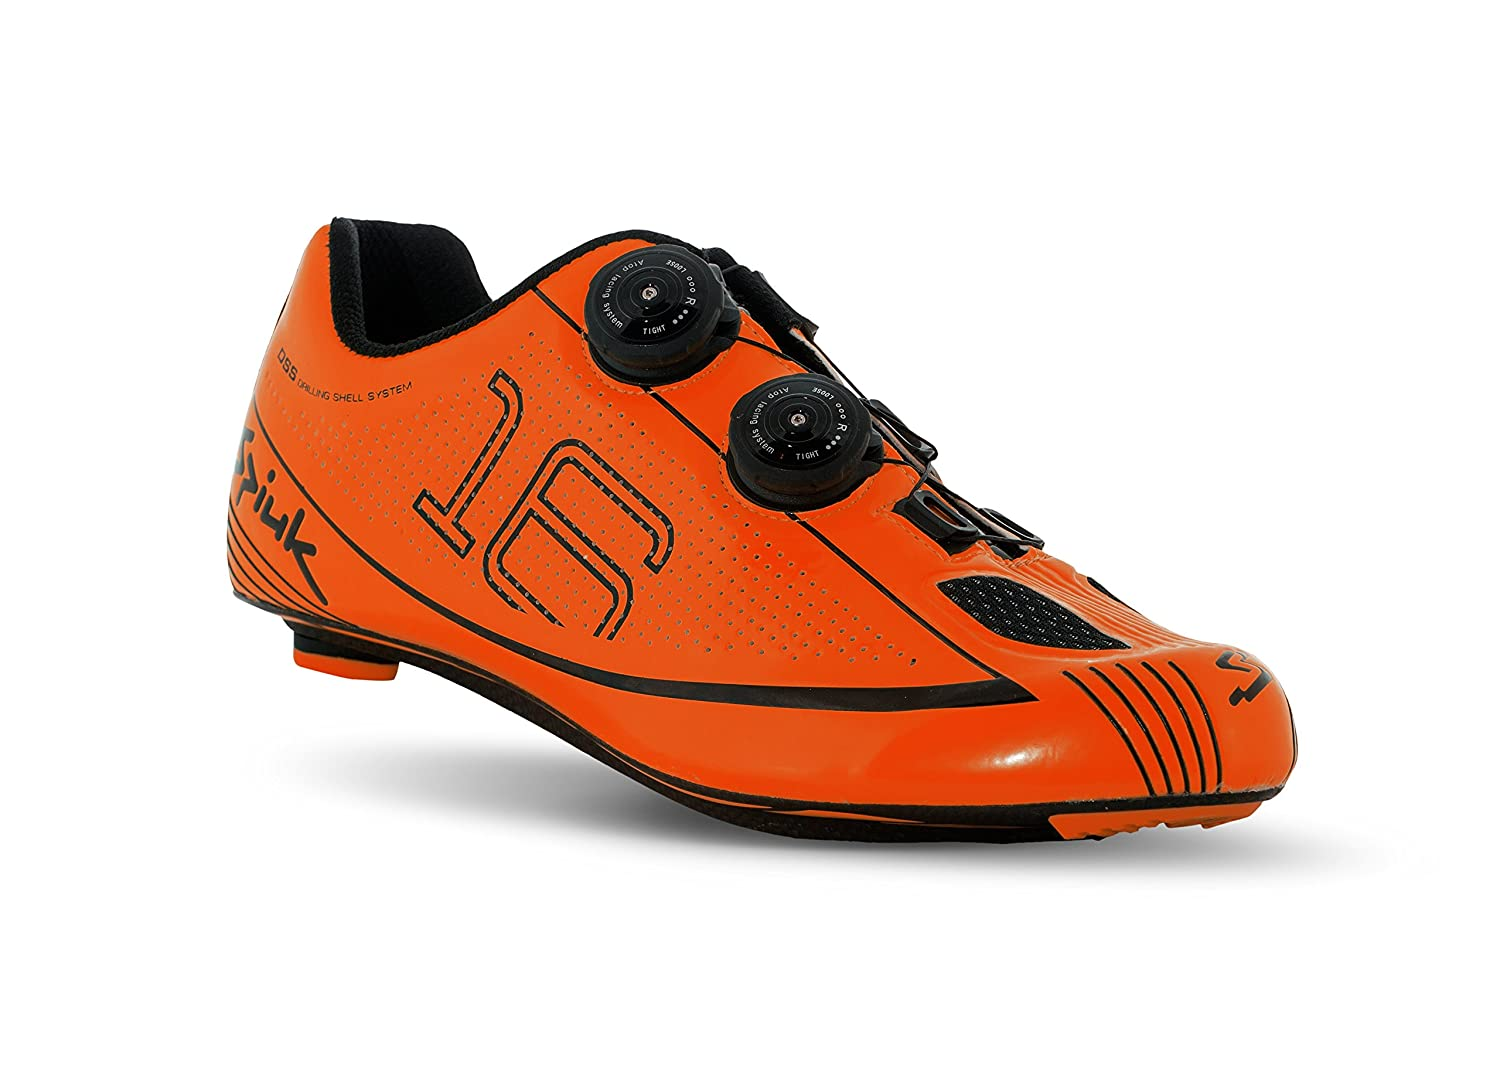 Spiuk 16 Road CARBONO Schuhe Schuhe Schuhe Unisex, Farbe, Unisex - Erwachsene, 16Rc Road C f220d5